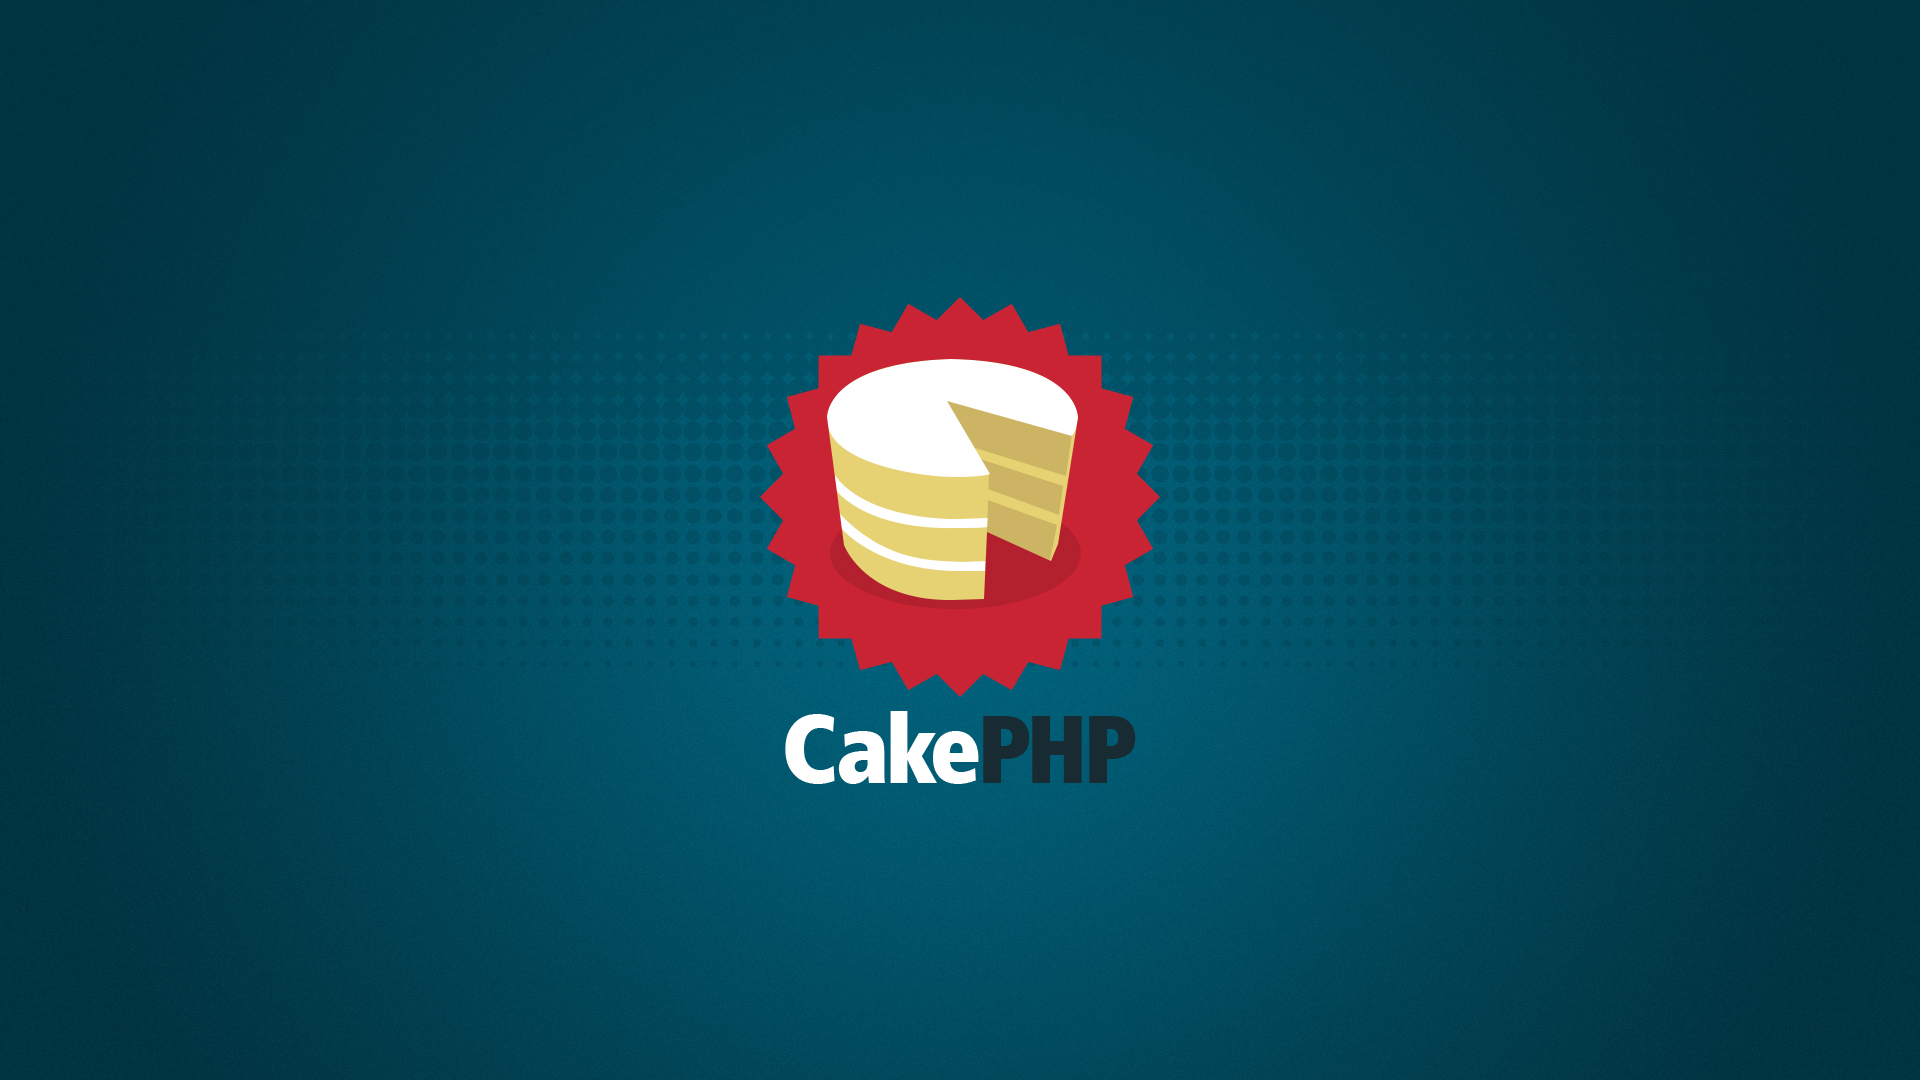 Hire Full Time, Part Time or Freelancer - Expert CakePHP Coders